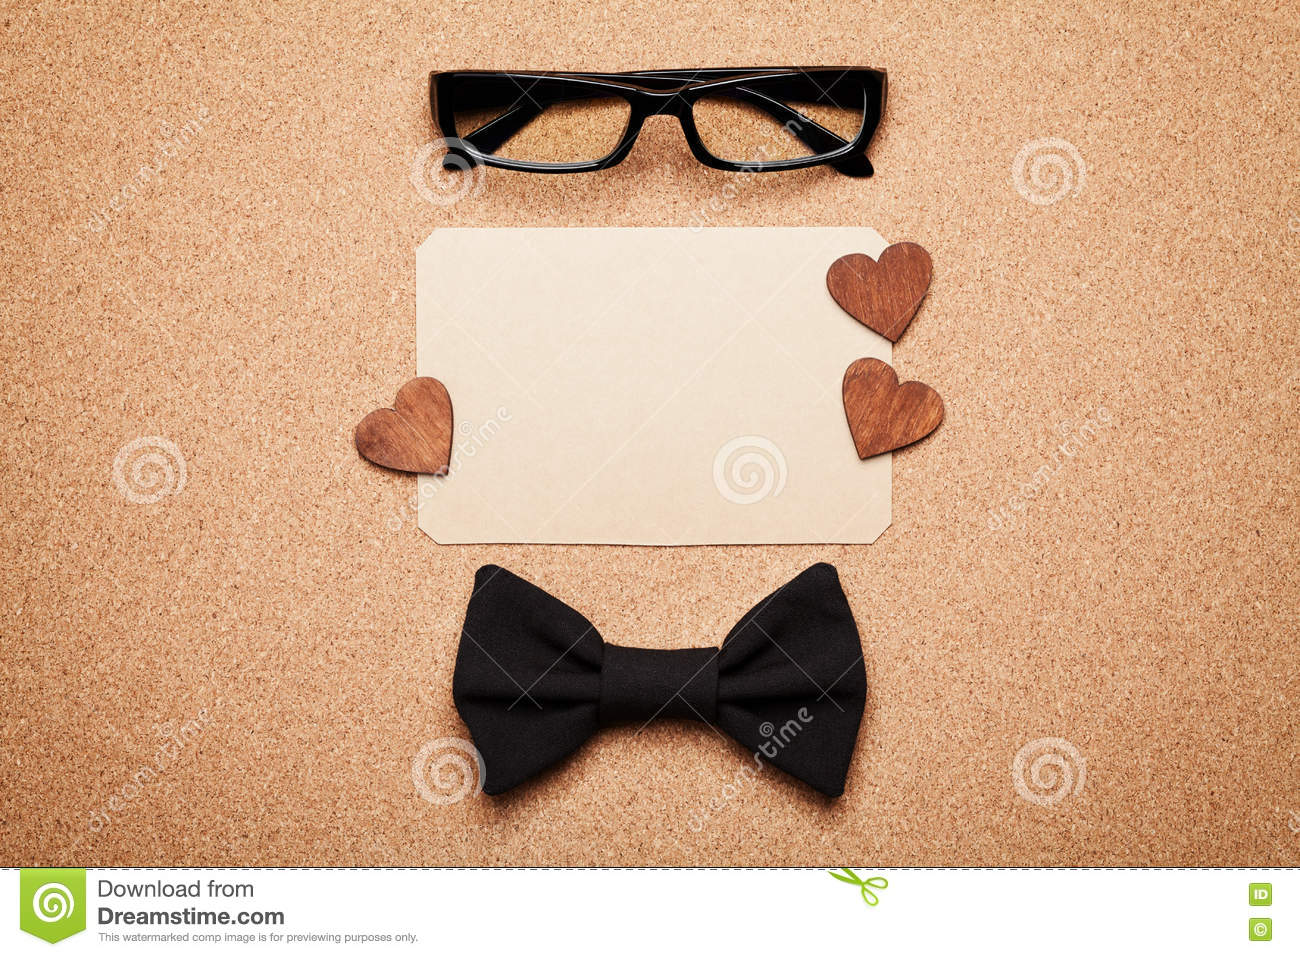 Spectacles, bowtie and empty paper blank in Happy Fathers Day, cork board background, top view, flat lay